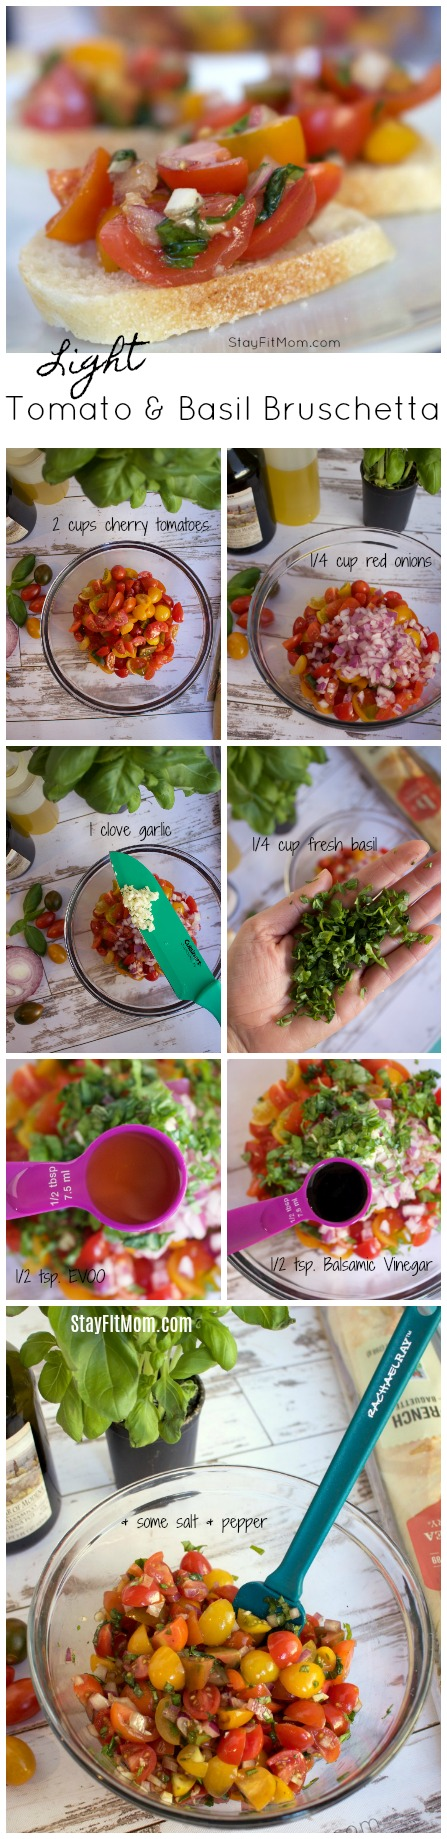 light, macro friendly appetizer or snack